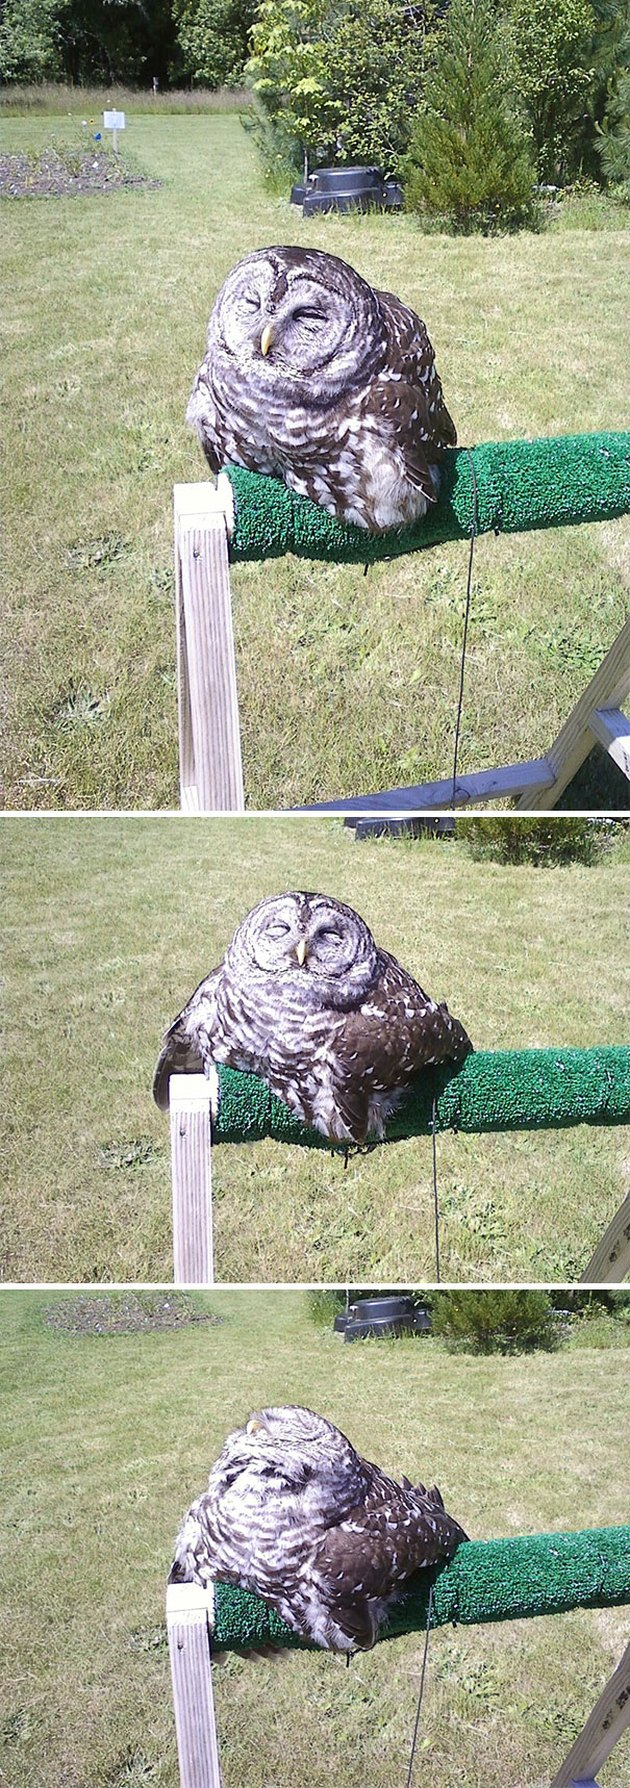 Owl looks like it's melting.